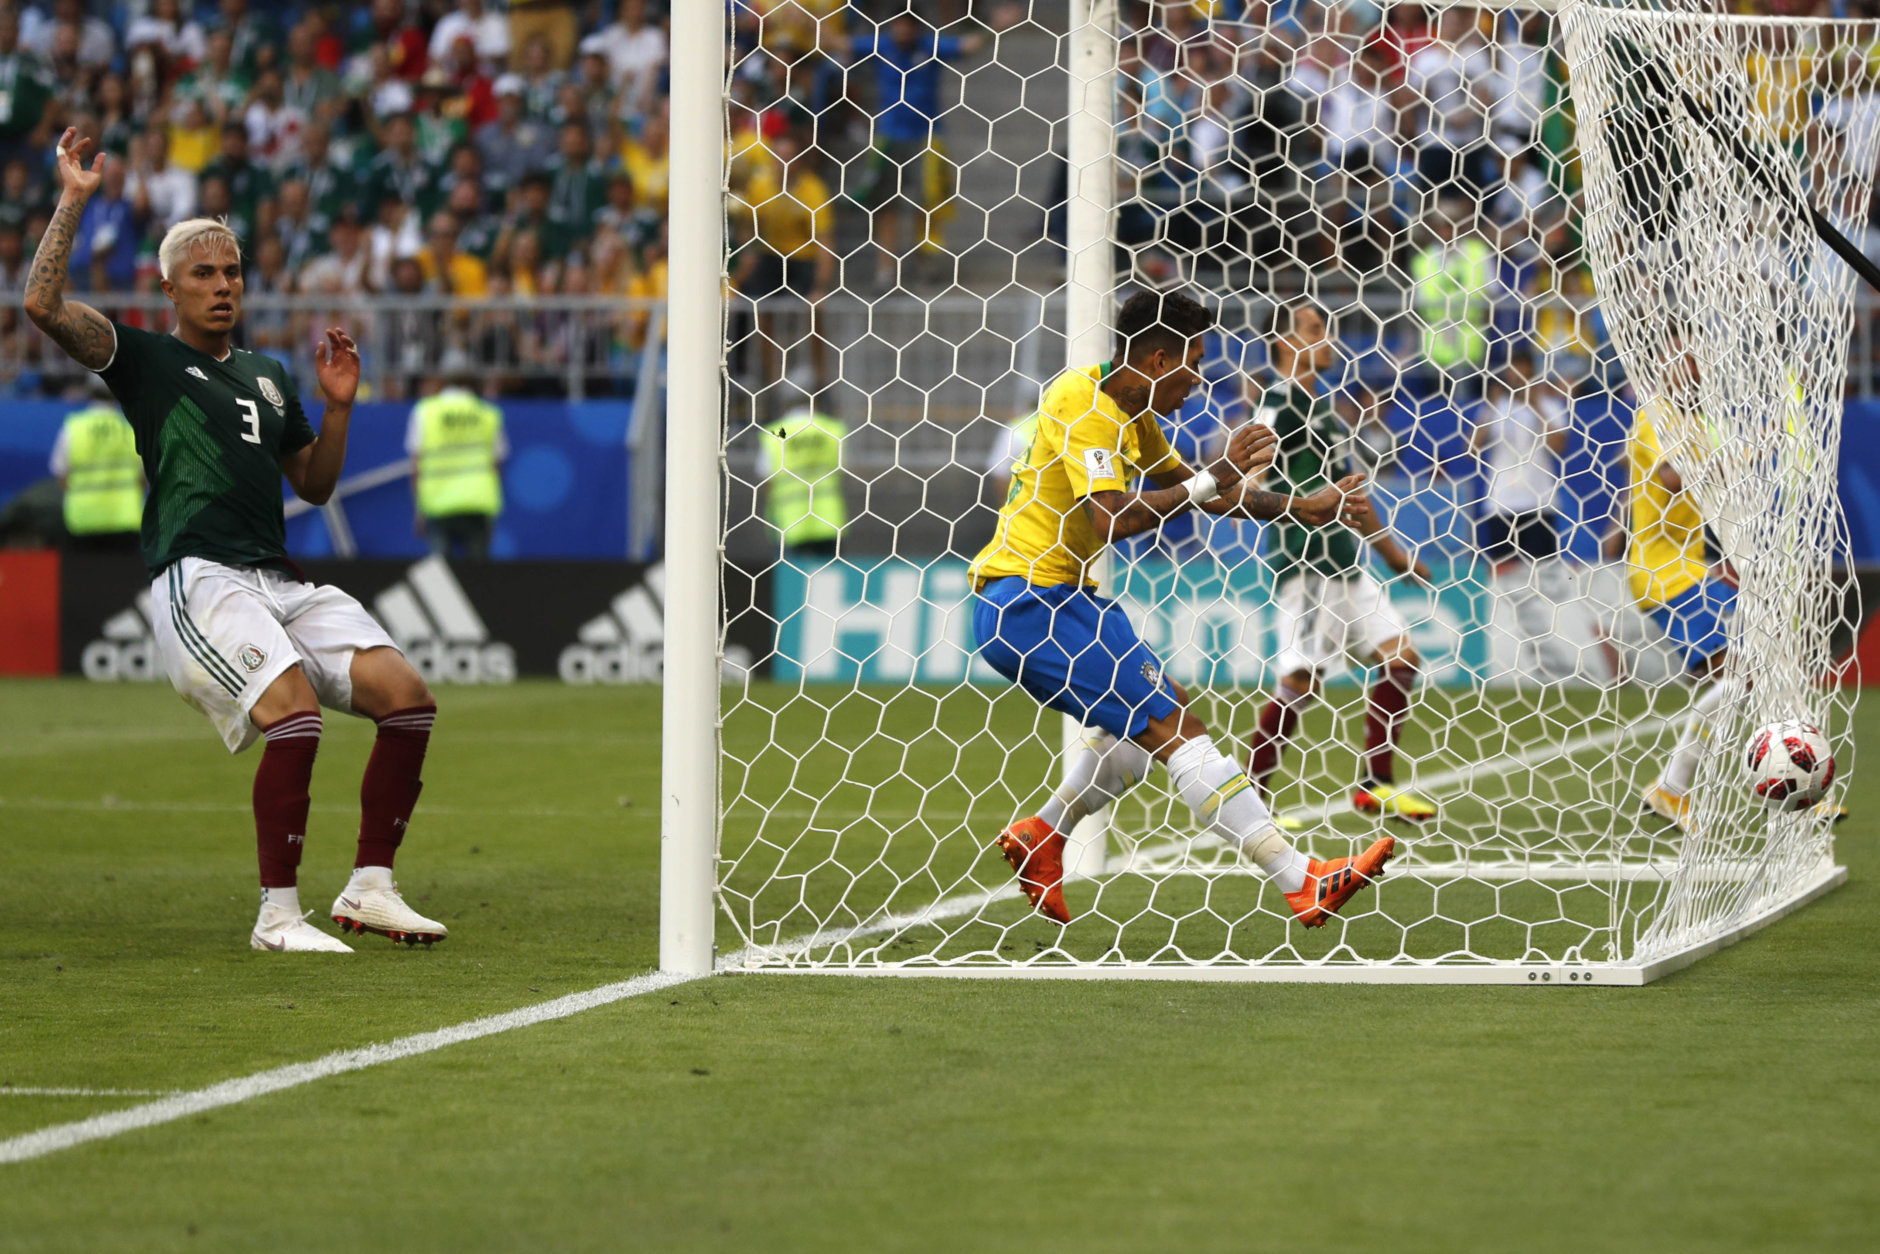 Brazil's Roberto Firmino scores his side's second goal during the round of 16 match between Brazil and Mexico at the 2018 soccer World Cup in the Samara Arena, in Samara, Russia, Monday, July 2, 2018. (AP Photo/Frank Augstein)